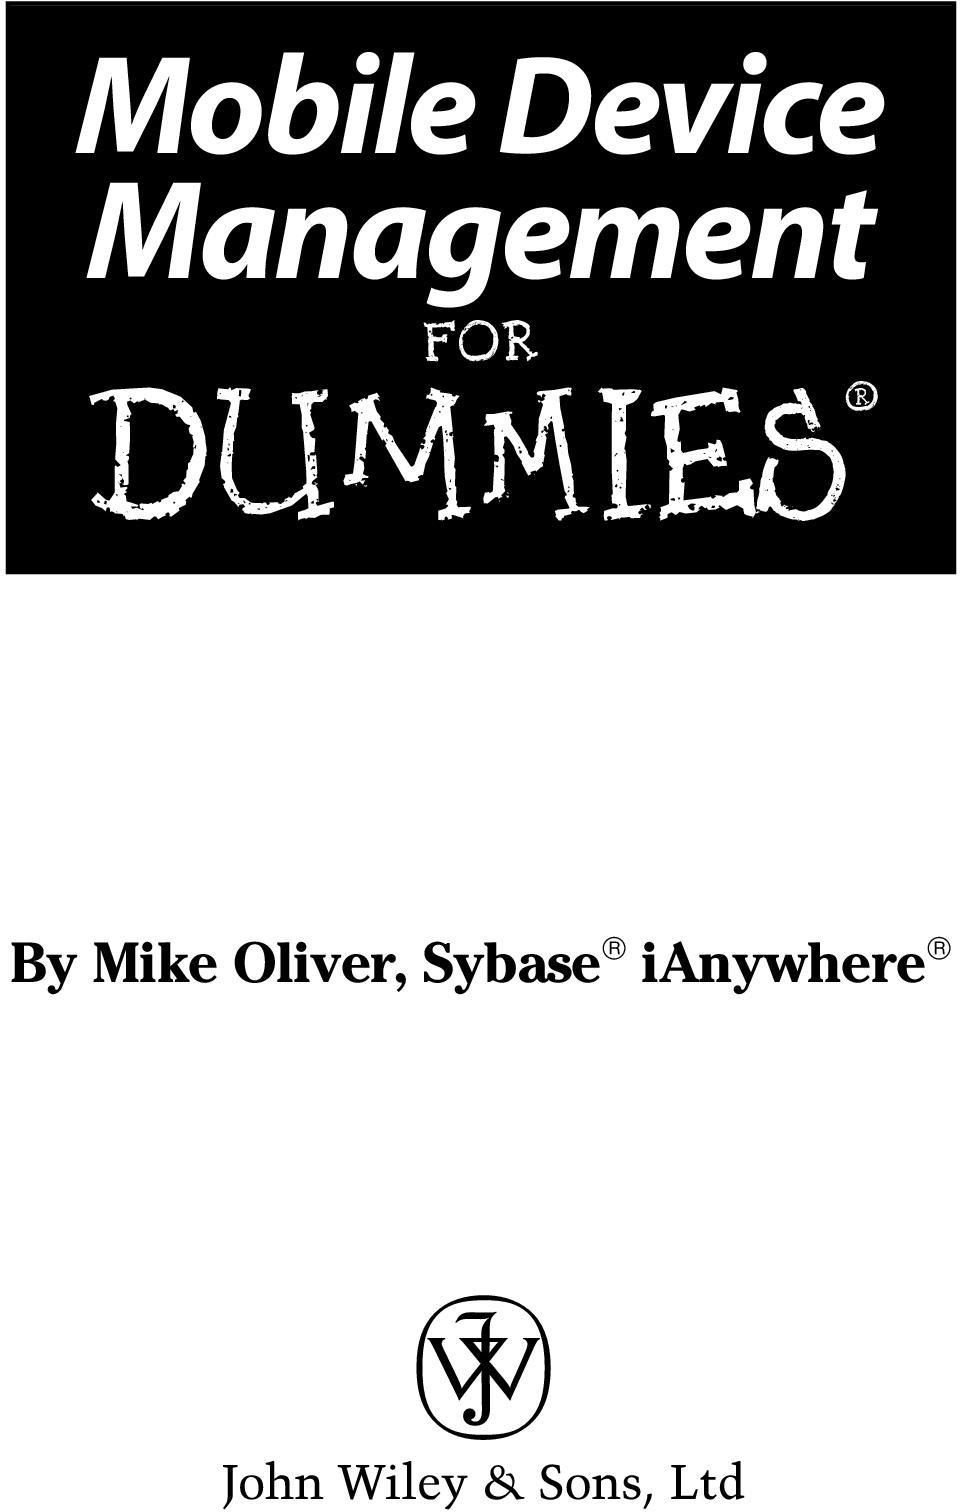 DUMmIES By Mike